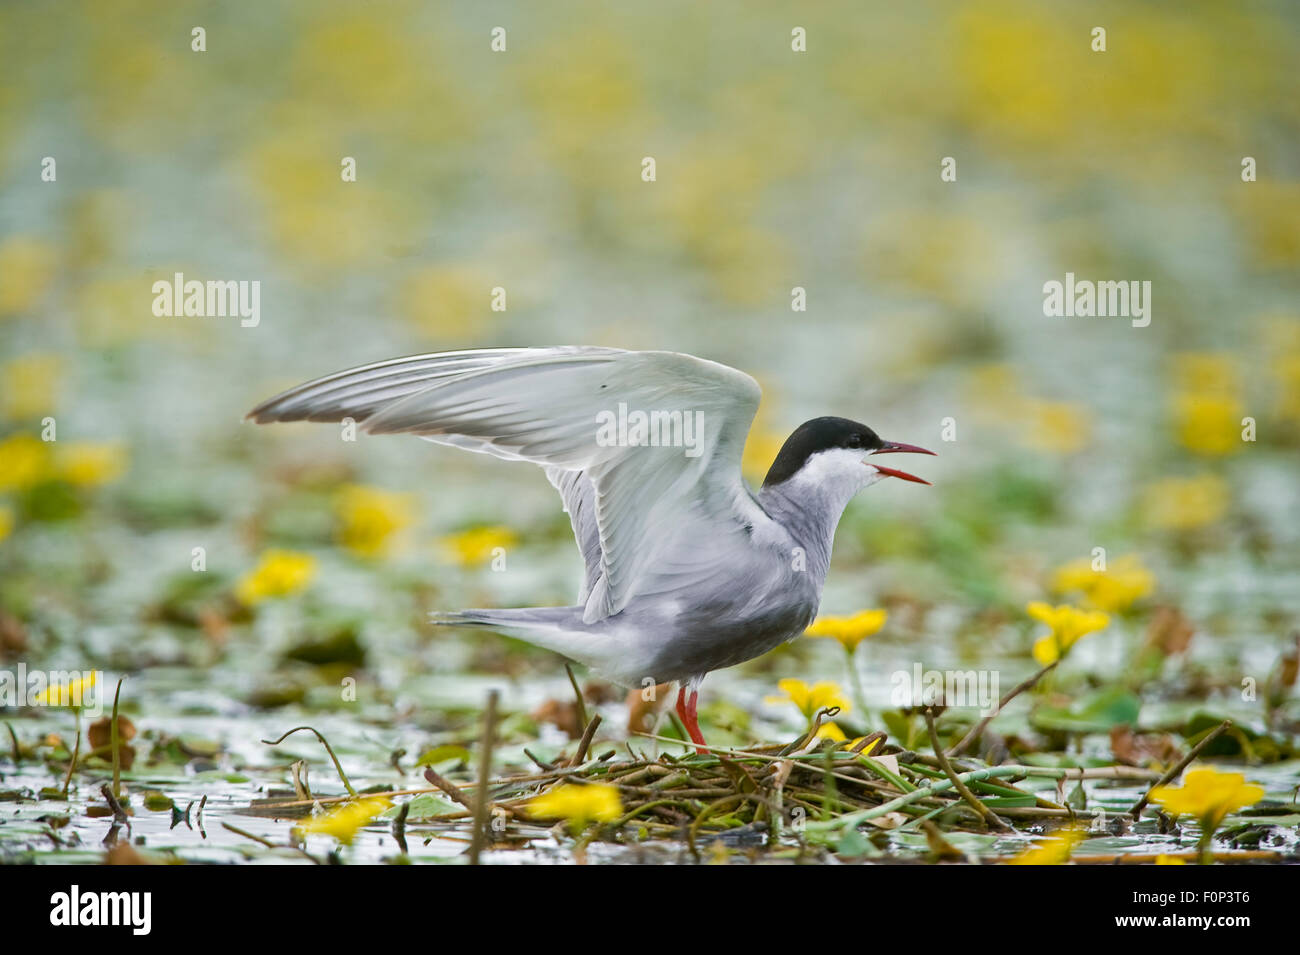 Whiskered tern (Chlidonias hybridus) calling on lake covered with flowering Fringed water lilies / Yellow floating - Stock Image